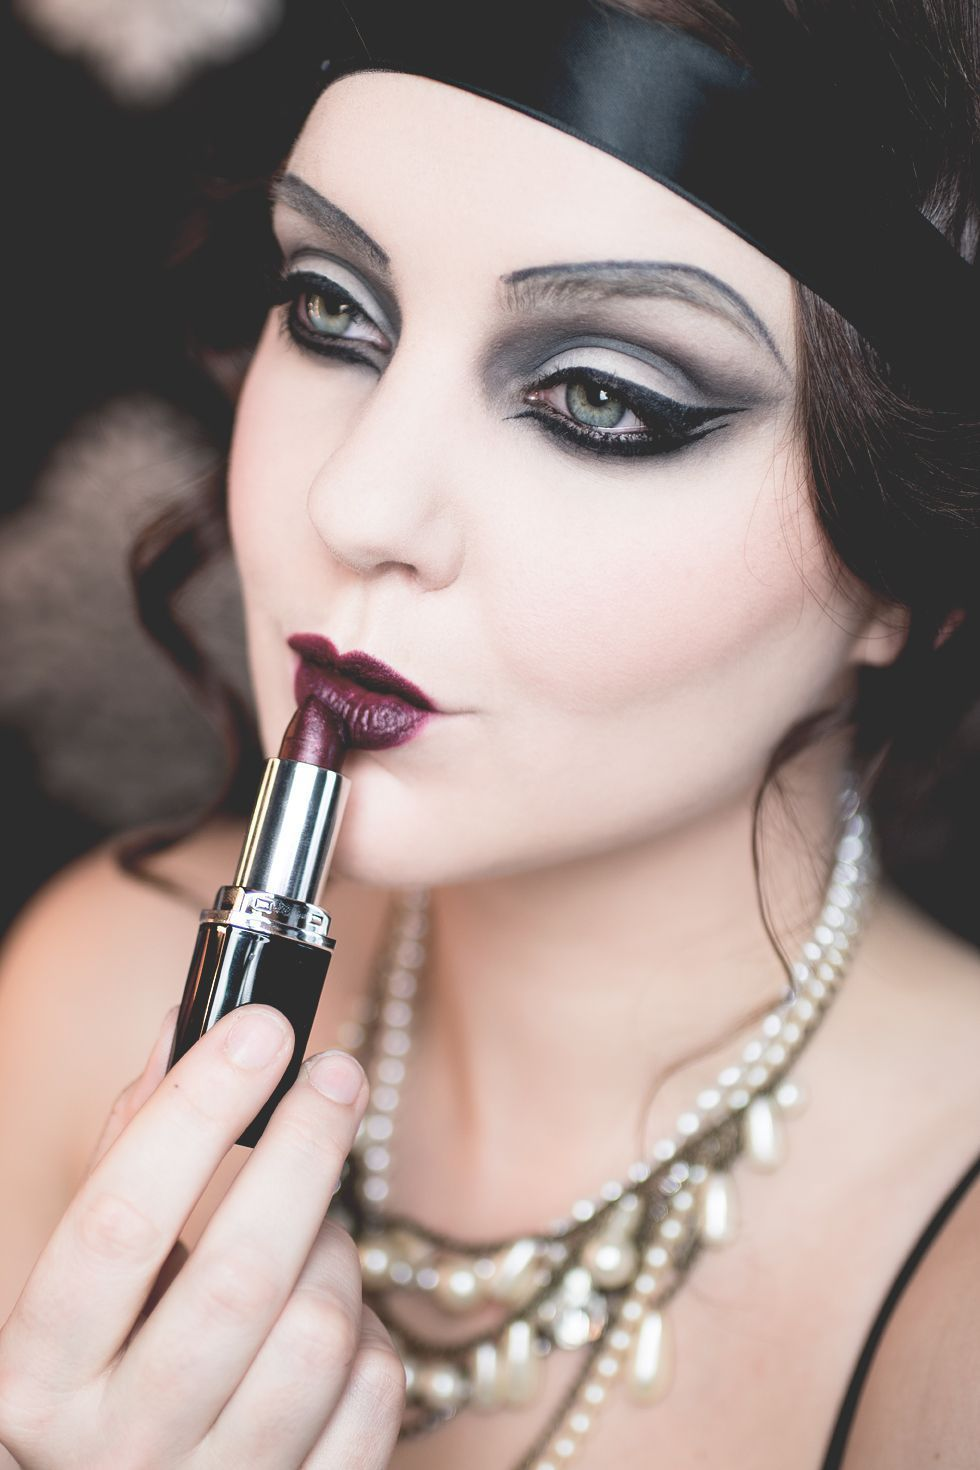 Isadora Halloween The Great Gatsby 20 Makeup In 2020 20s Makeup Gatsby Makeup Vintage Makeup 1920s